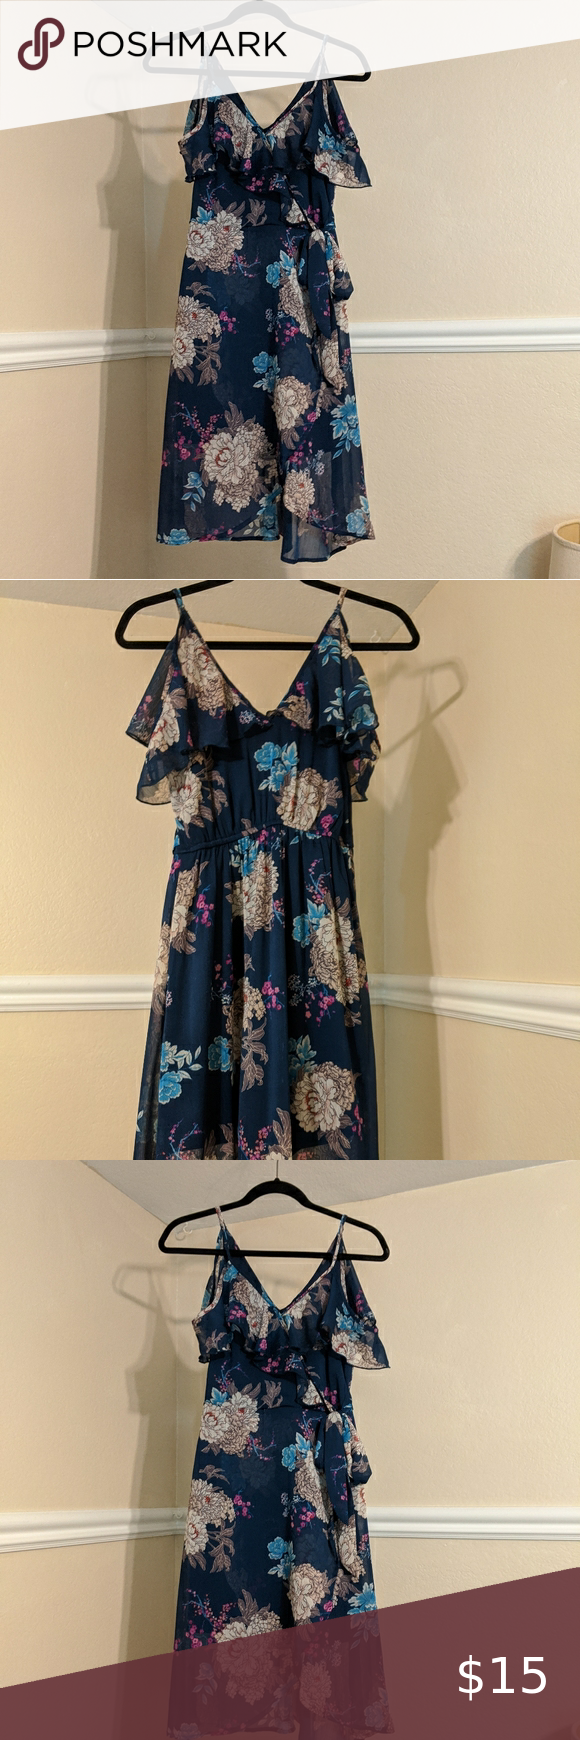 Blue Floral Target Dress Adjustable Spaghetti Straps With Off The Shoulder Mini Sleeves Navy Blue Dressn With In 2020 Blue Floral Print Dress Navy Blue Dresses Dresses [ 1740 x 580 Pixel ]